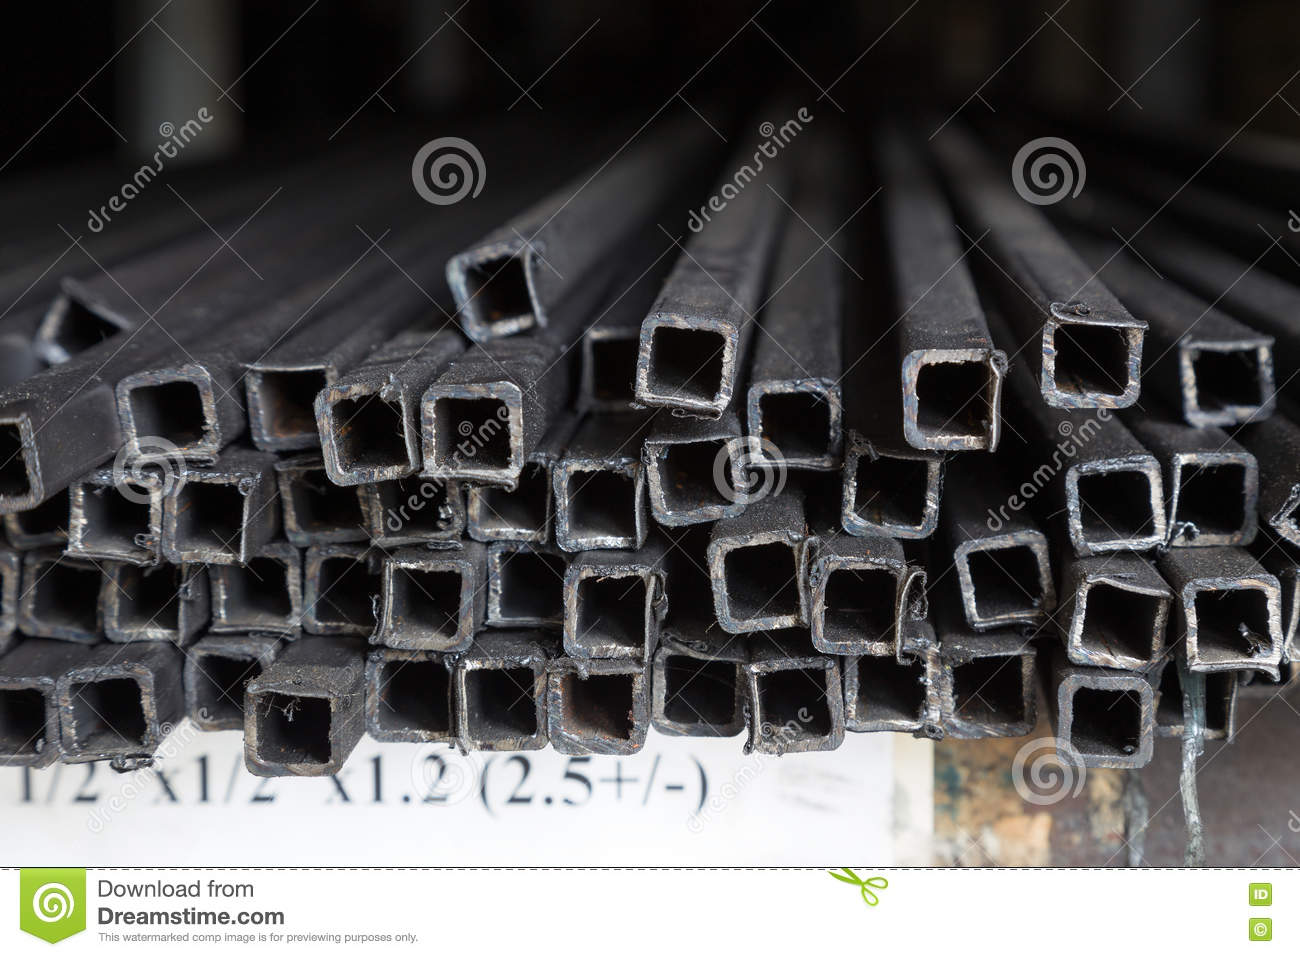 Rack Of Construction Steel Pipes Stock Photo - Image of metal, bunch